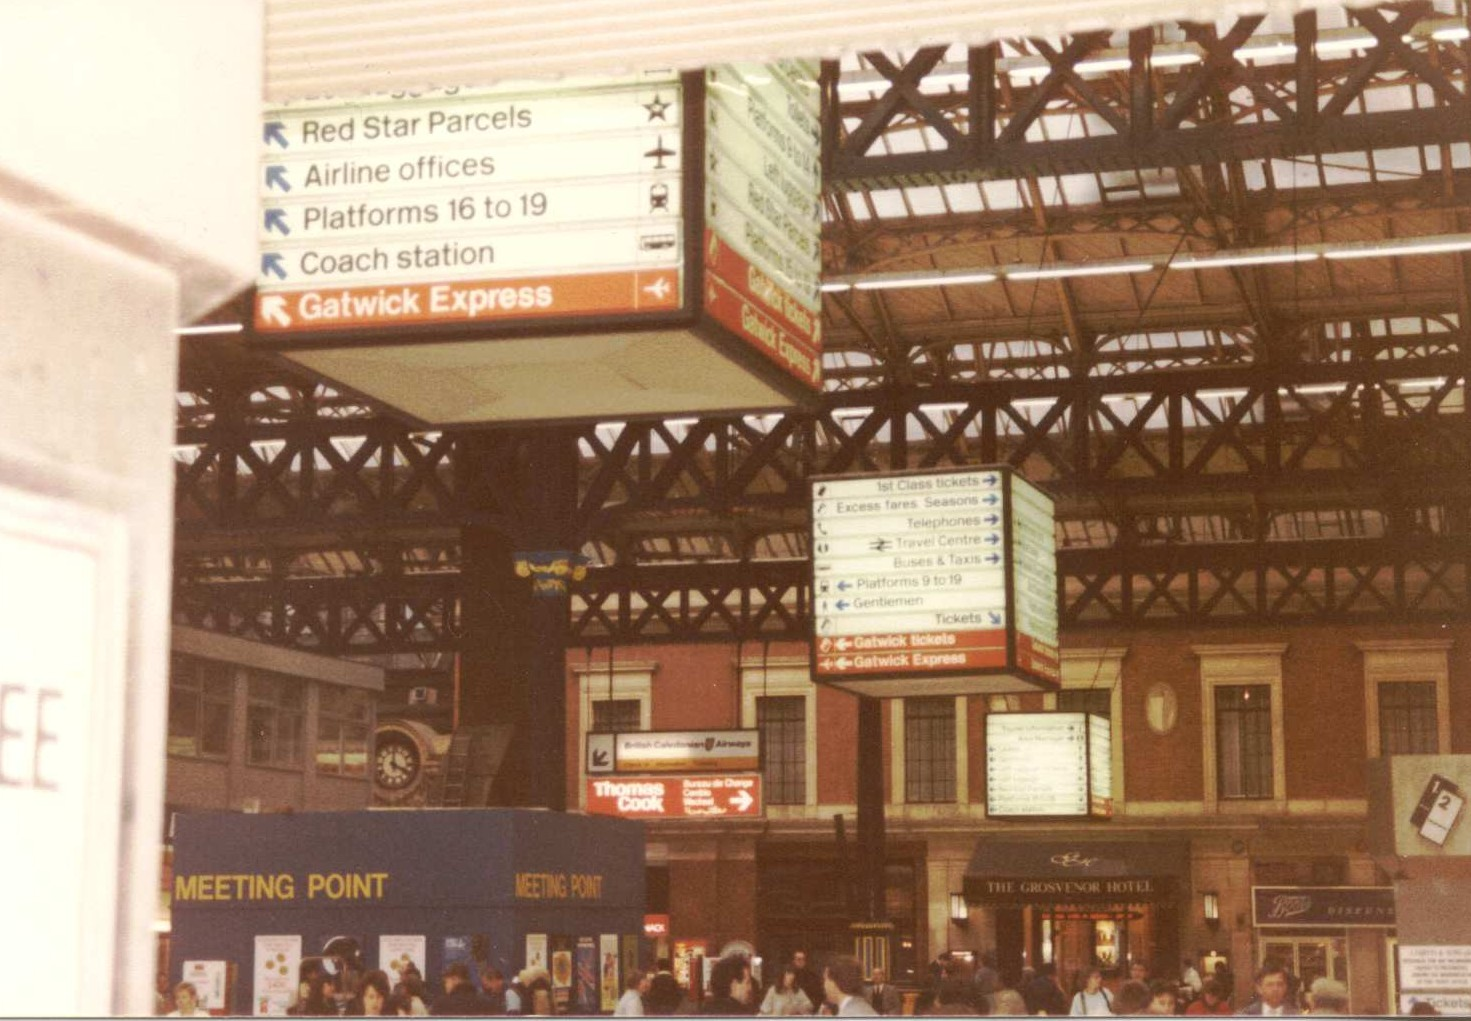 Liverpool street station, London, 198x